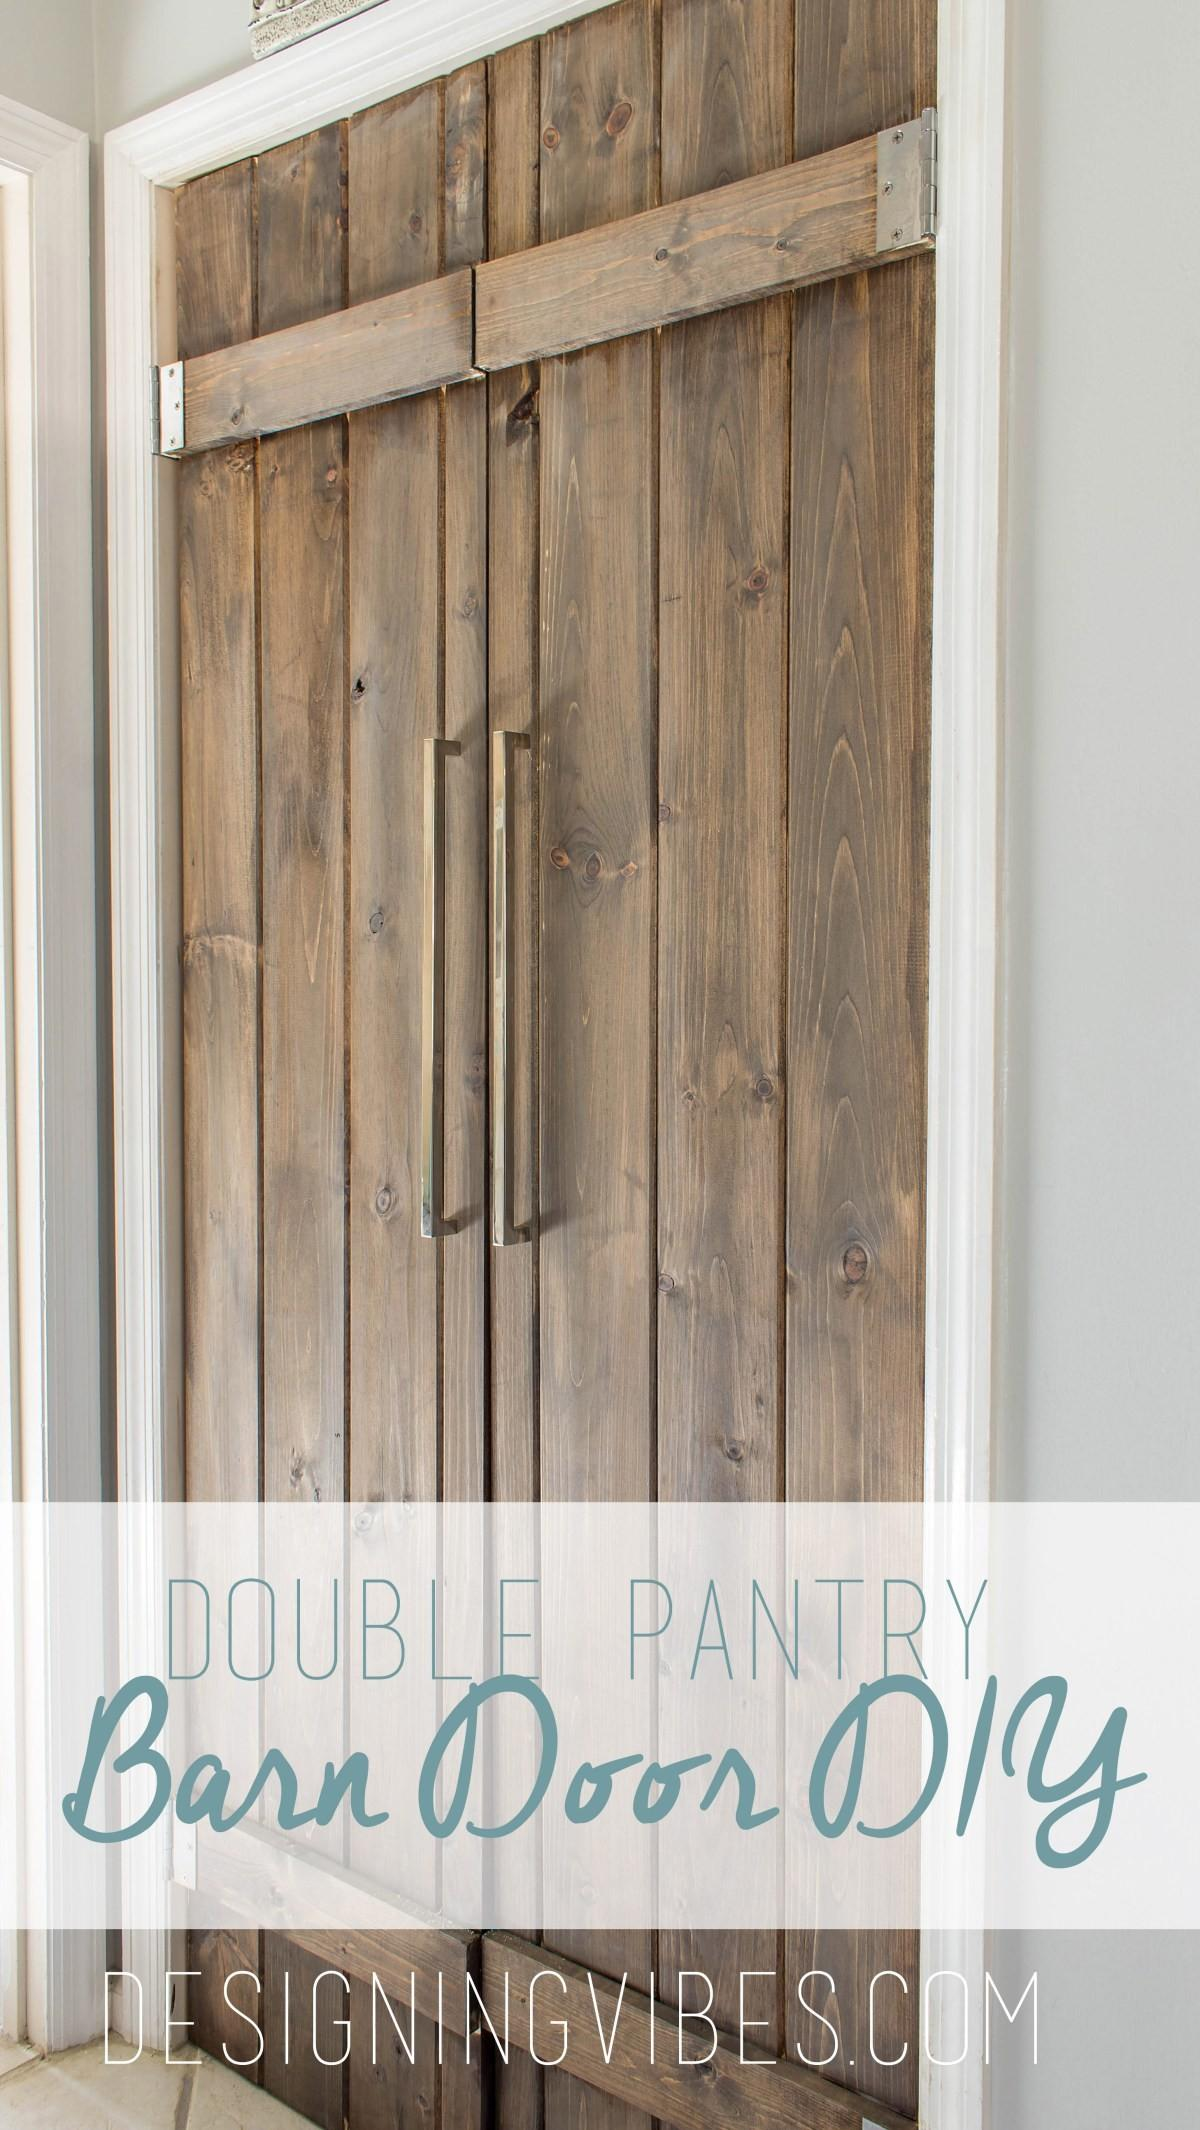 Double Pantry Barn Door Diy Under